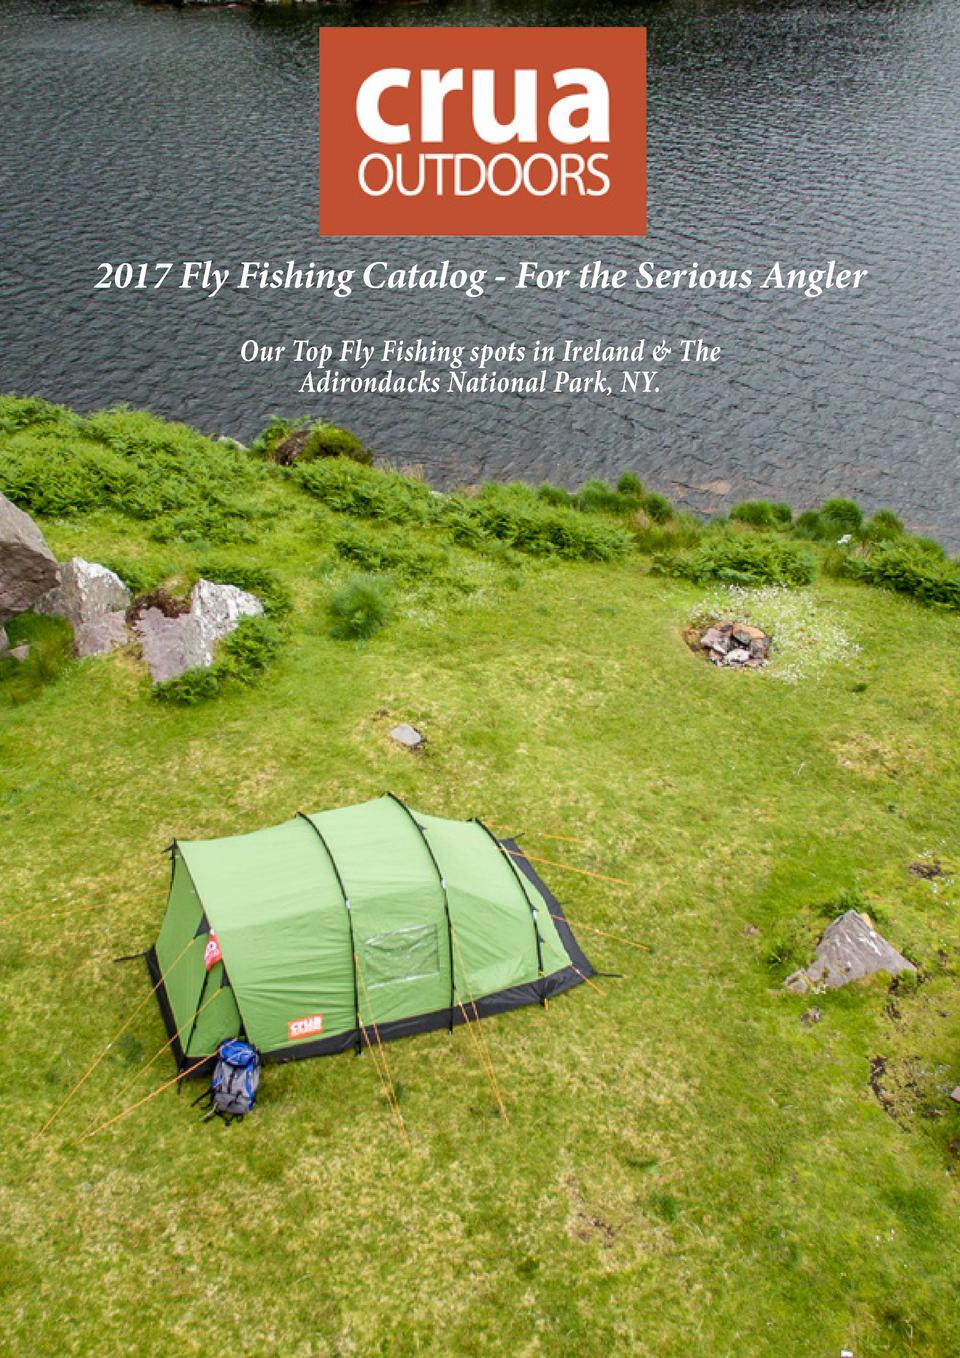 2017 Fly Fishing Catalog - For the Serious Angler Our Top Fly Fishing spots in Ireland   The Adirondacks National Park, NY...